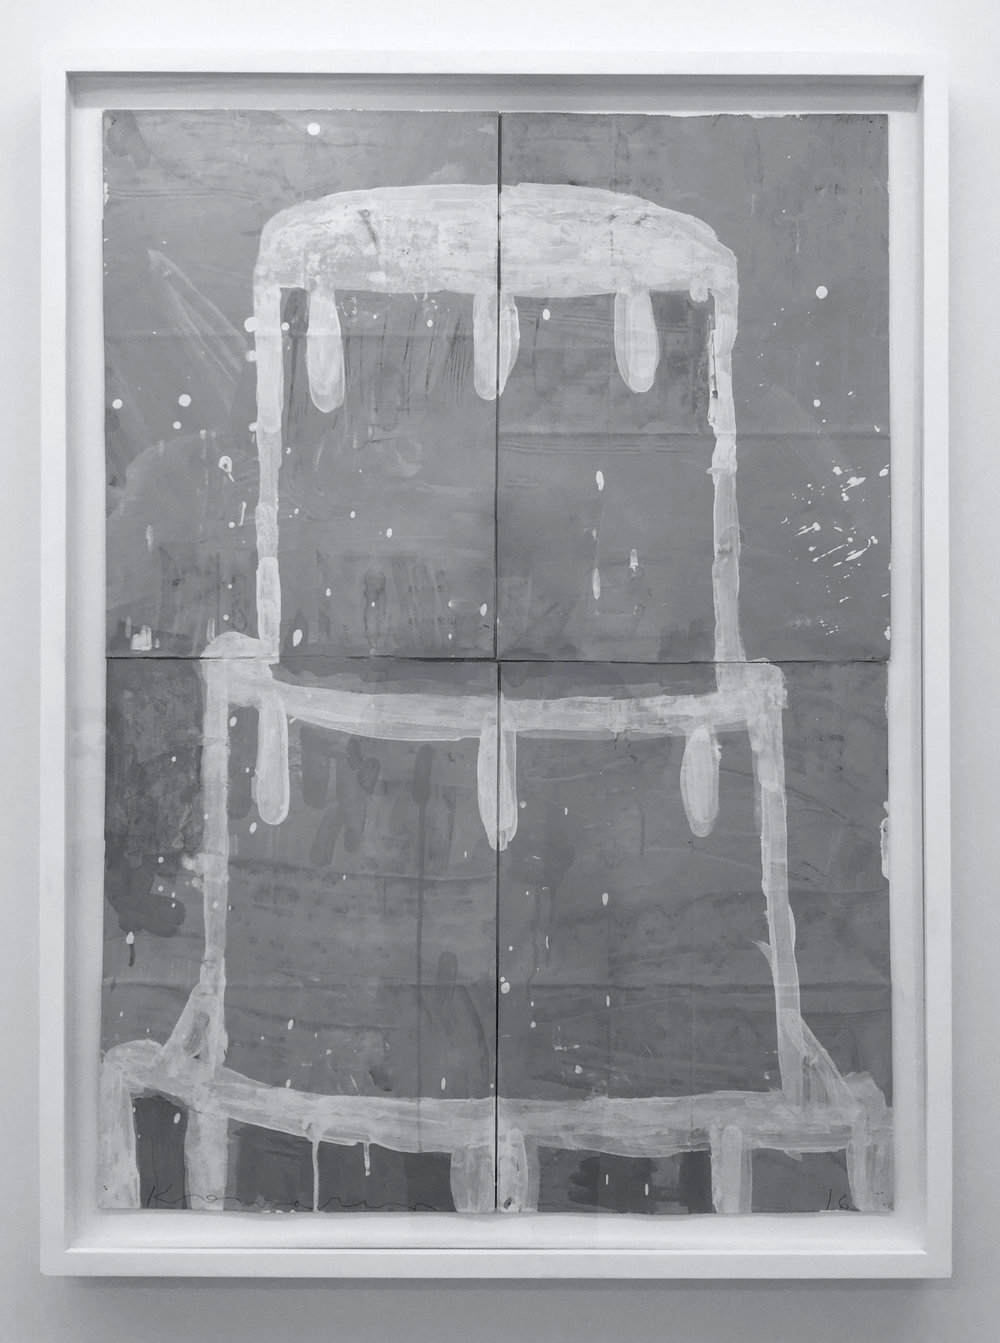 Gary Komarin,  Cake, Stacked: Creme on Grey , 2016, Water Based Enamel Paint on Paper Sacks, 33.25 x 23.75 inches